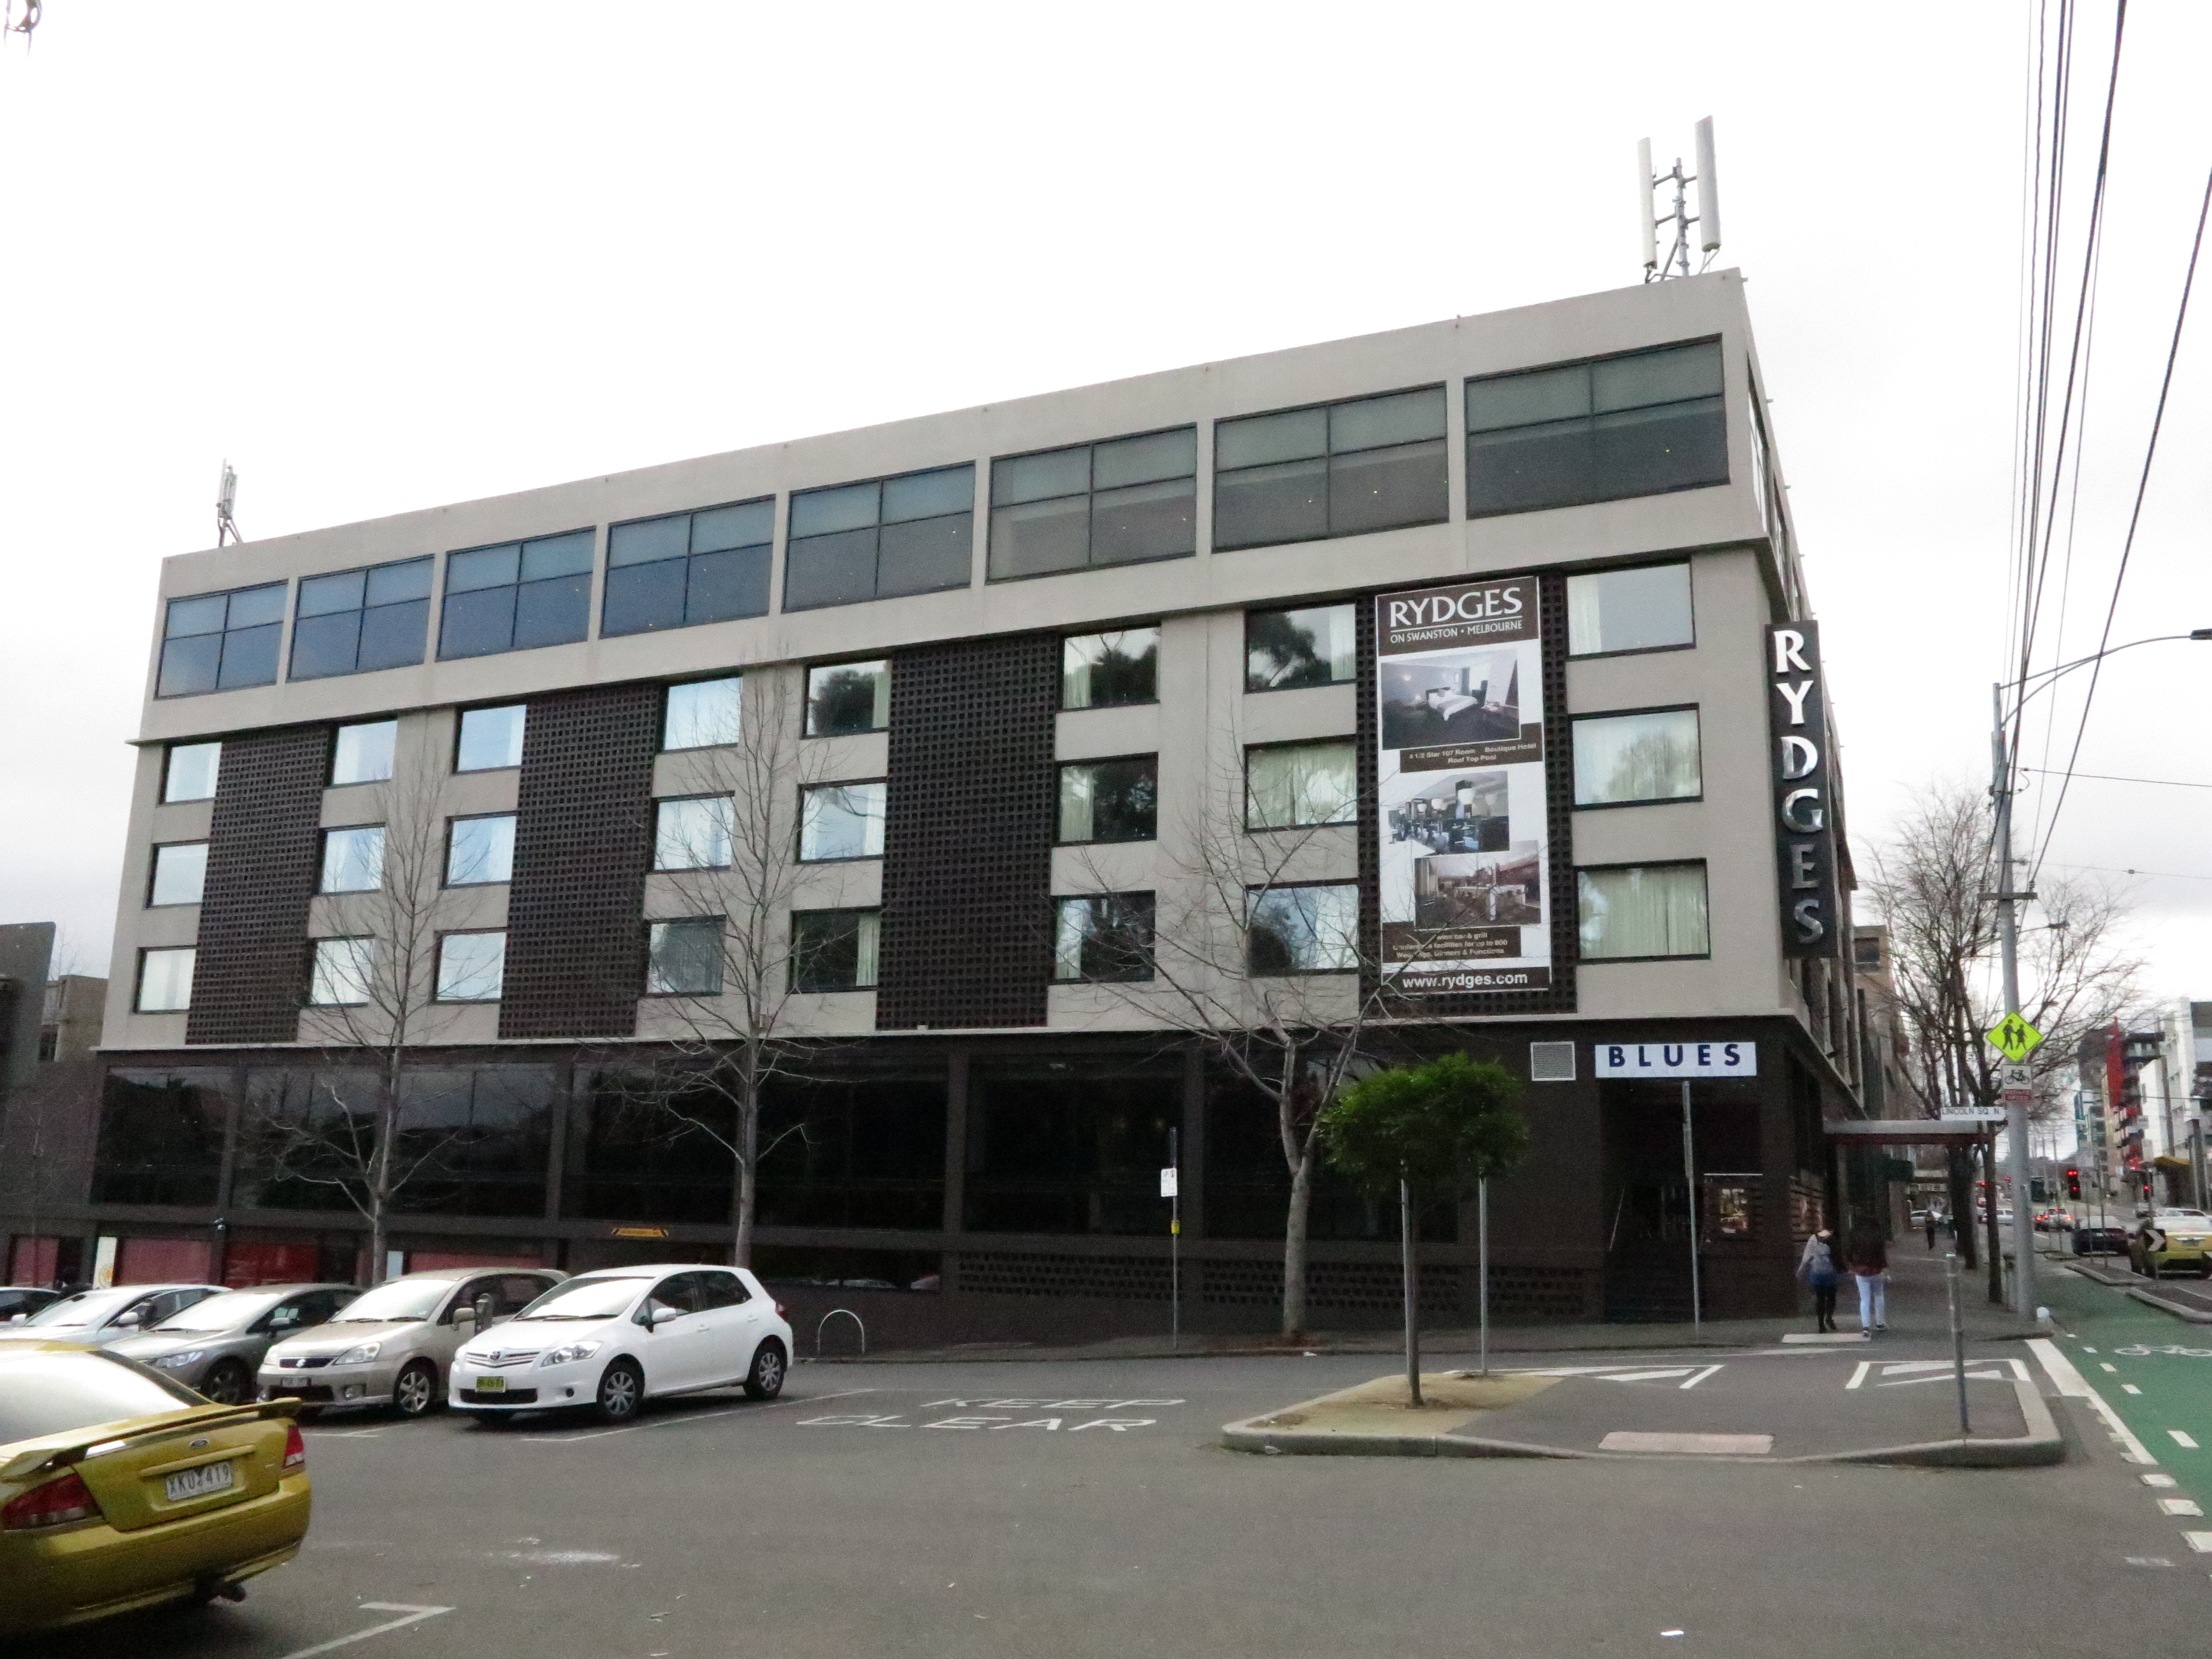 Rydges On Swanston hotel - an example of a hotel where DLNA technology can be relevant